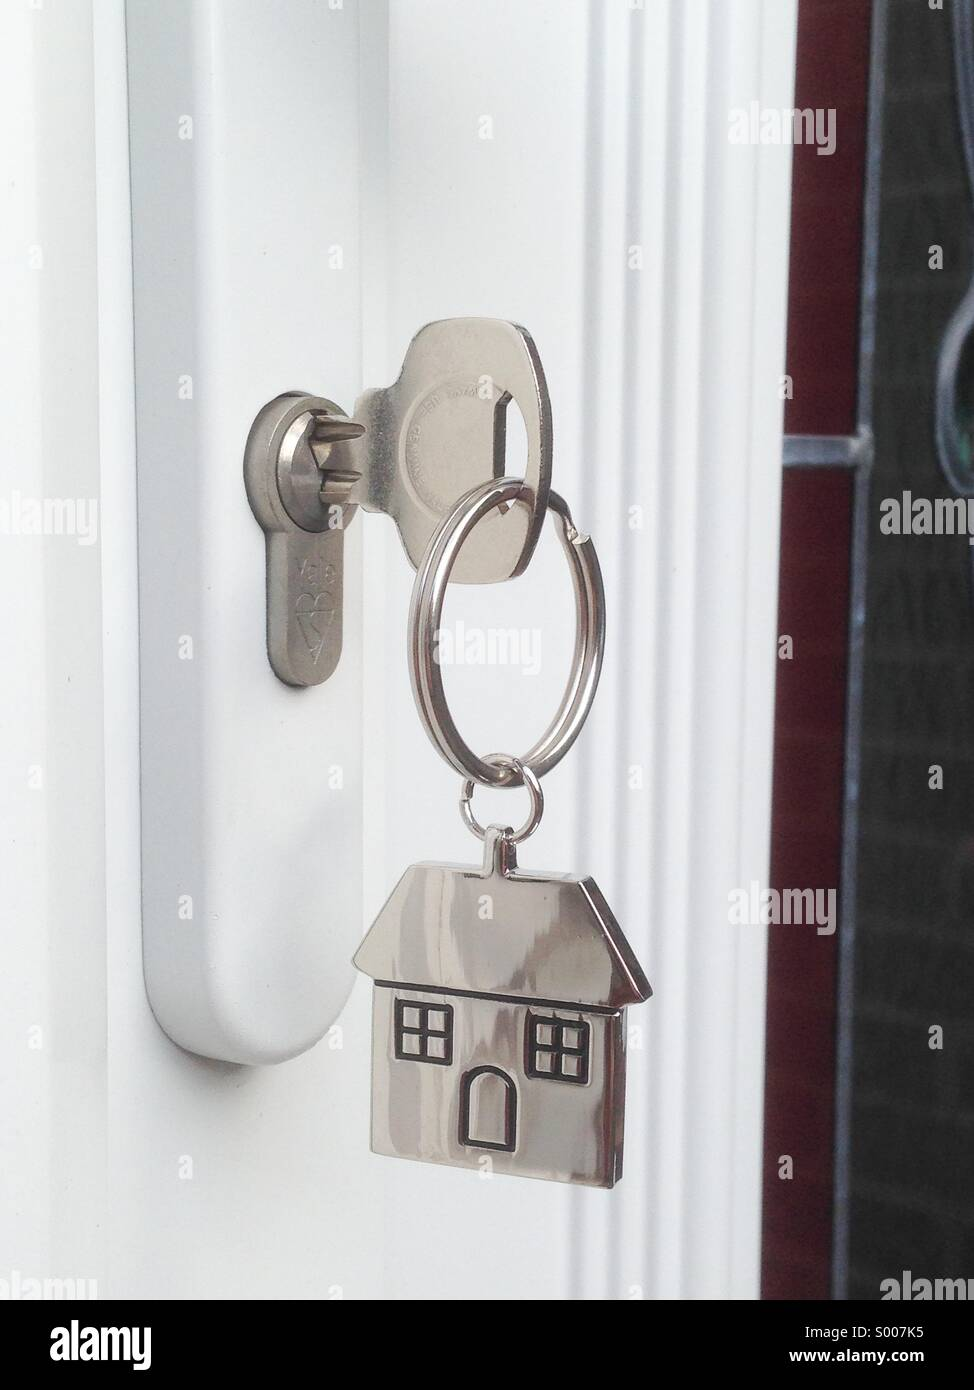 Delicieux Front Door Key And House Key Tag   Stock Image